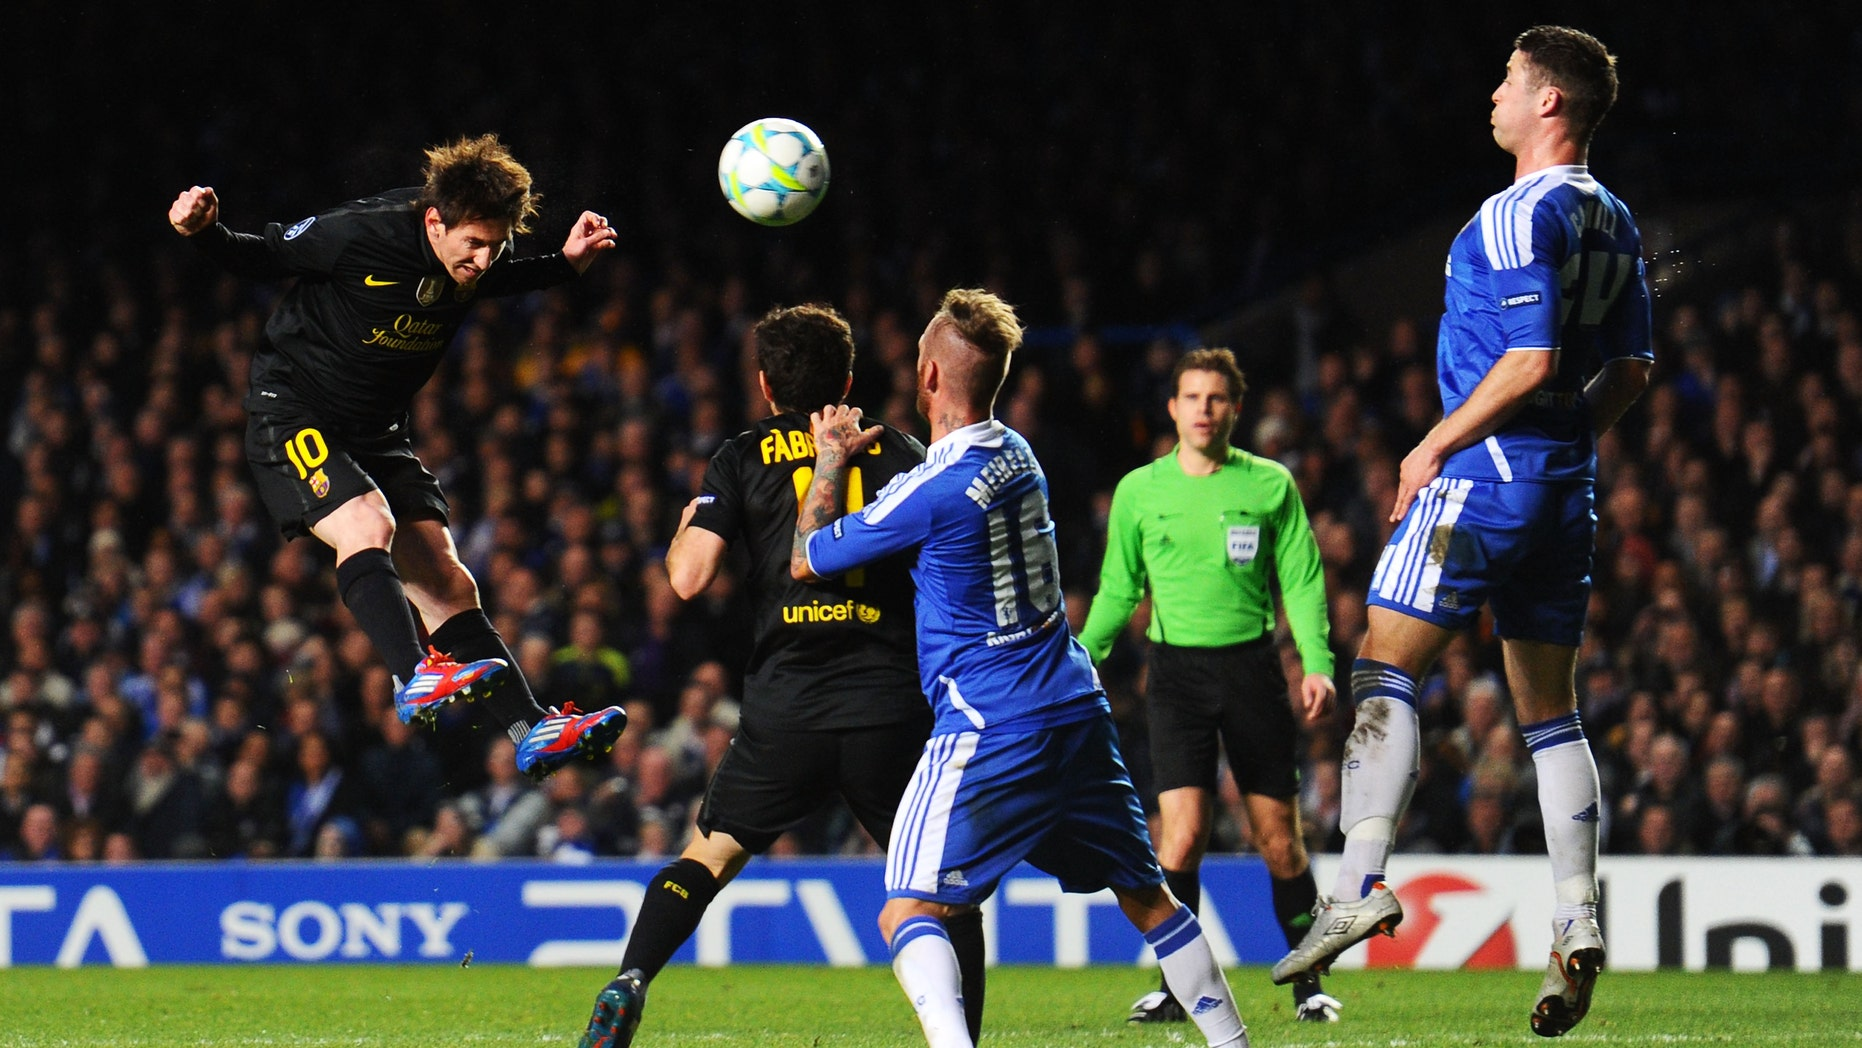 LONDON, ENGLAND - APRIL 18:  Lionel Messi (L) of Barcelona heads the ball towards the Chelsea goal during the UEFA Champions League Semi Final first leg match between Chelsea and Barcelona at Stamford Bridge on April 18, 2012 in London, England.  (Photo by Mike Hewitt/Getty Images)